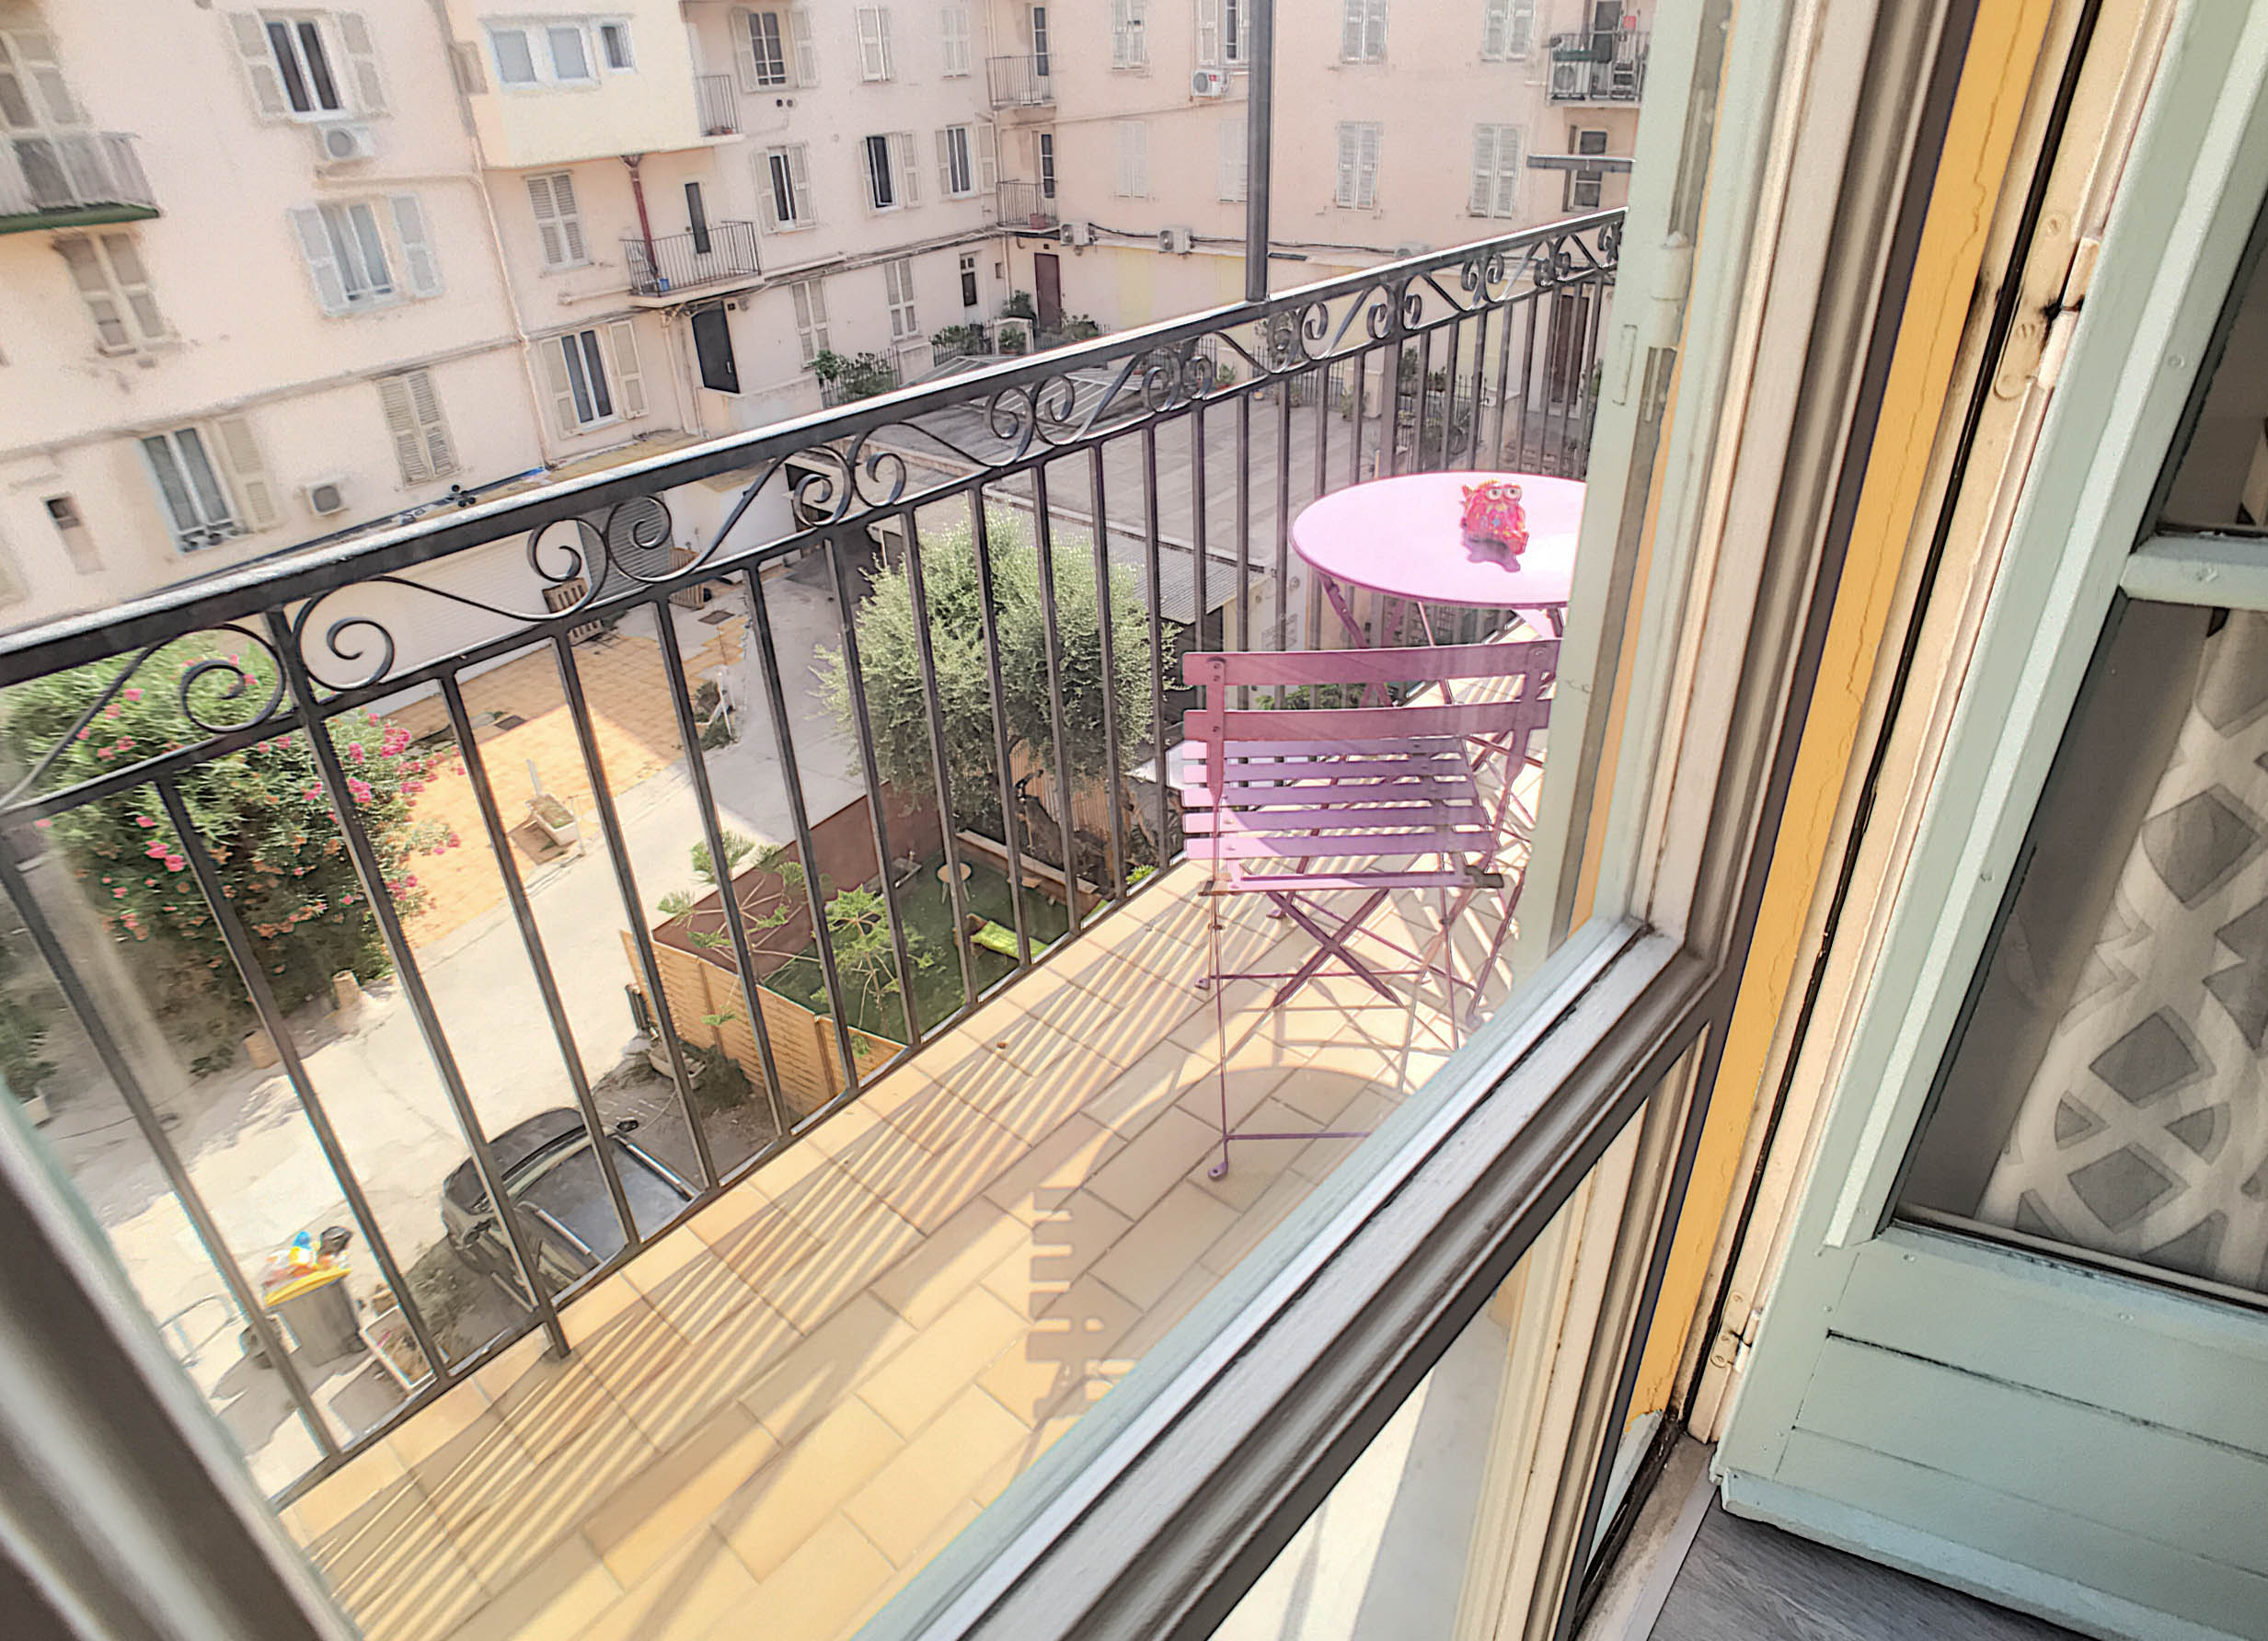 NICE – CARRE D'OR Apartment 4 rooms 90m2 to sale